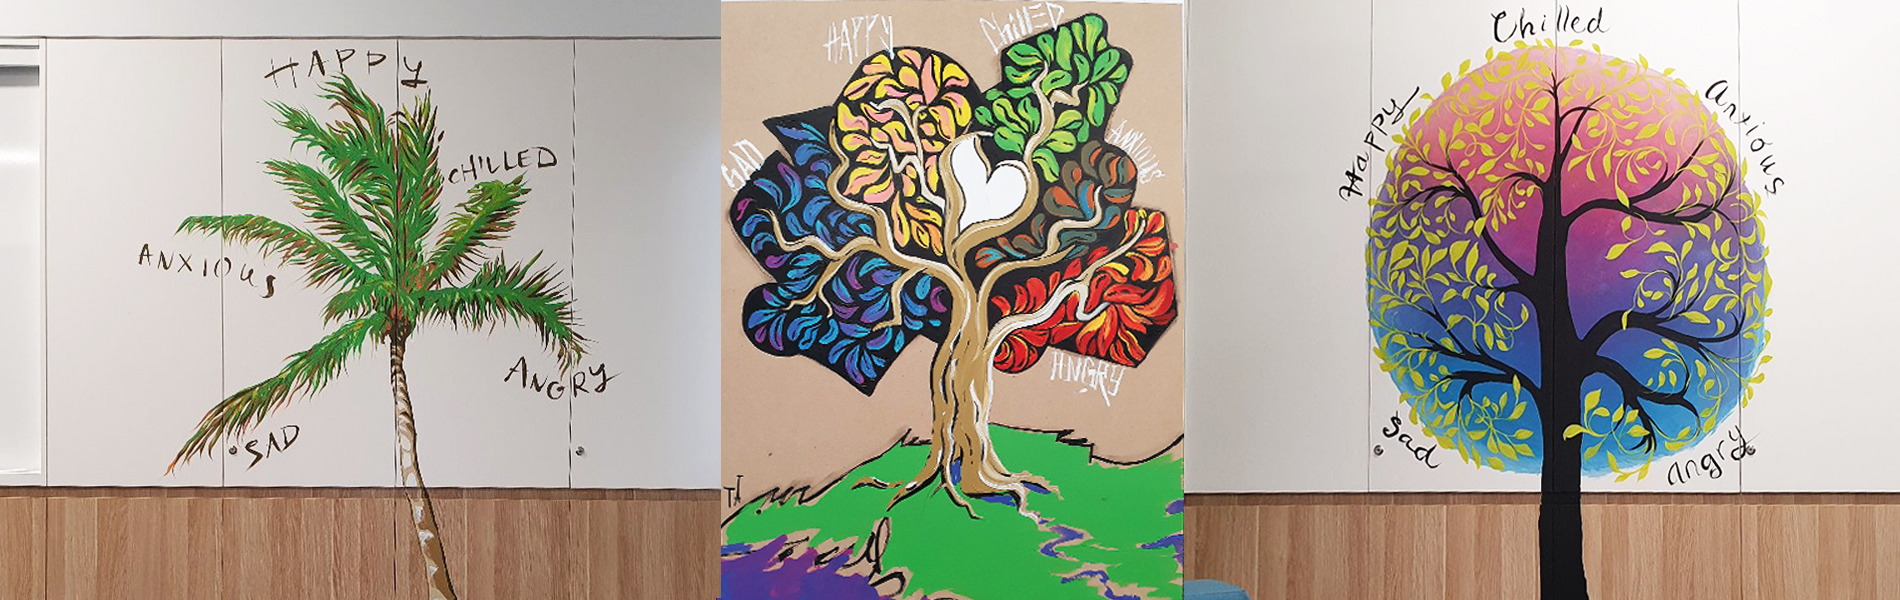 YMCA-Hand-painted-murals-by-Sharron-Tancred-The-Mural-Shop